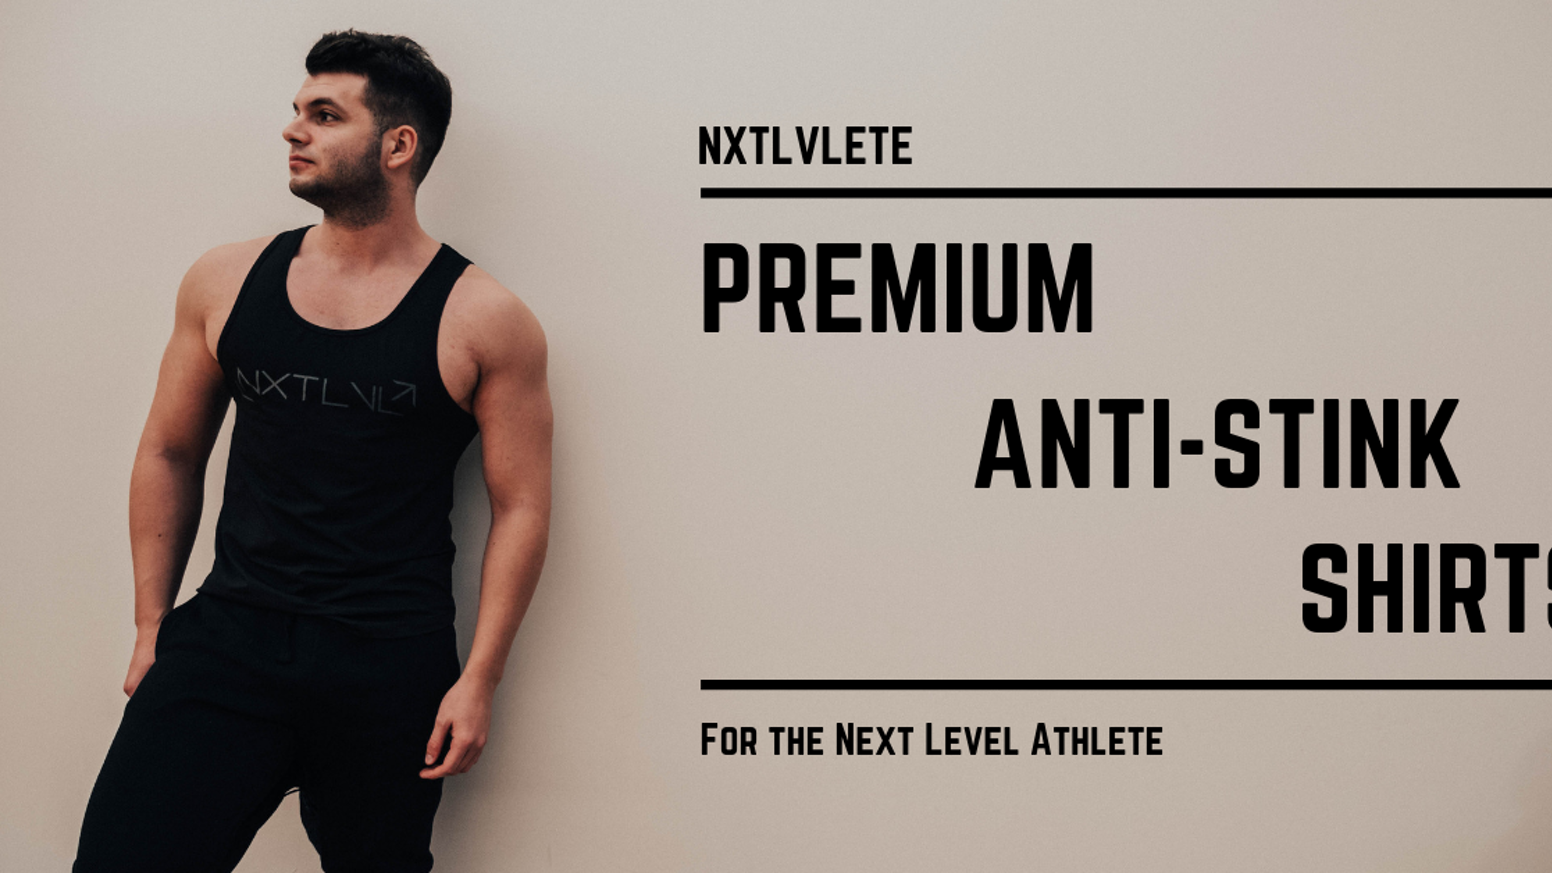 0ceca22f61c69 Next Level Fitness Apparel designed for Next Level Athletes. The World s  First Premium Anti-